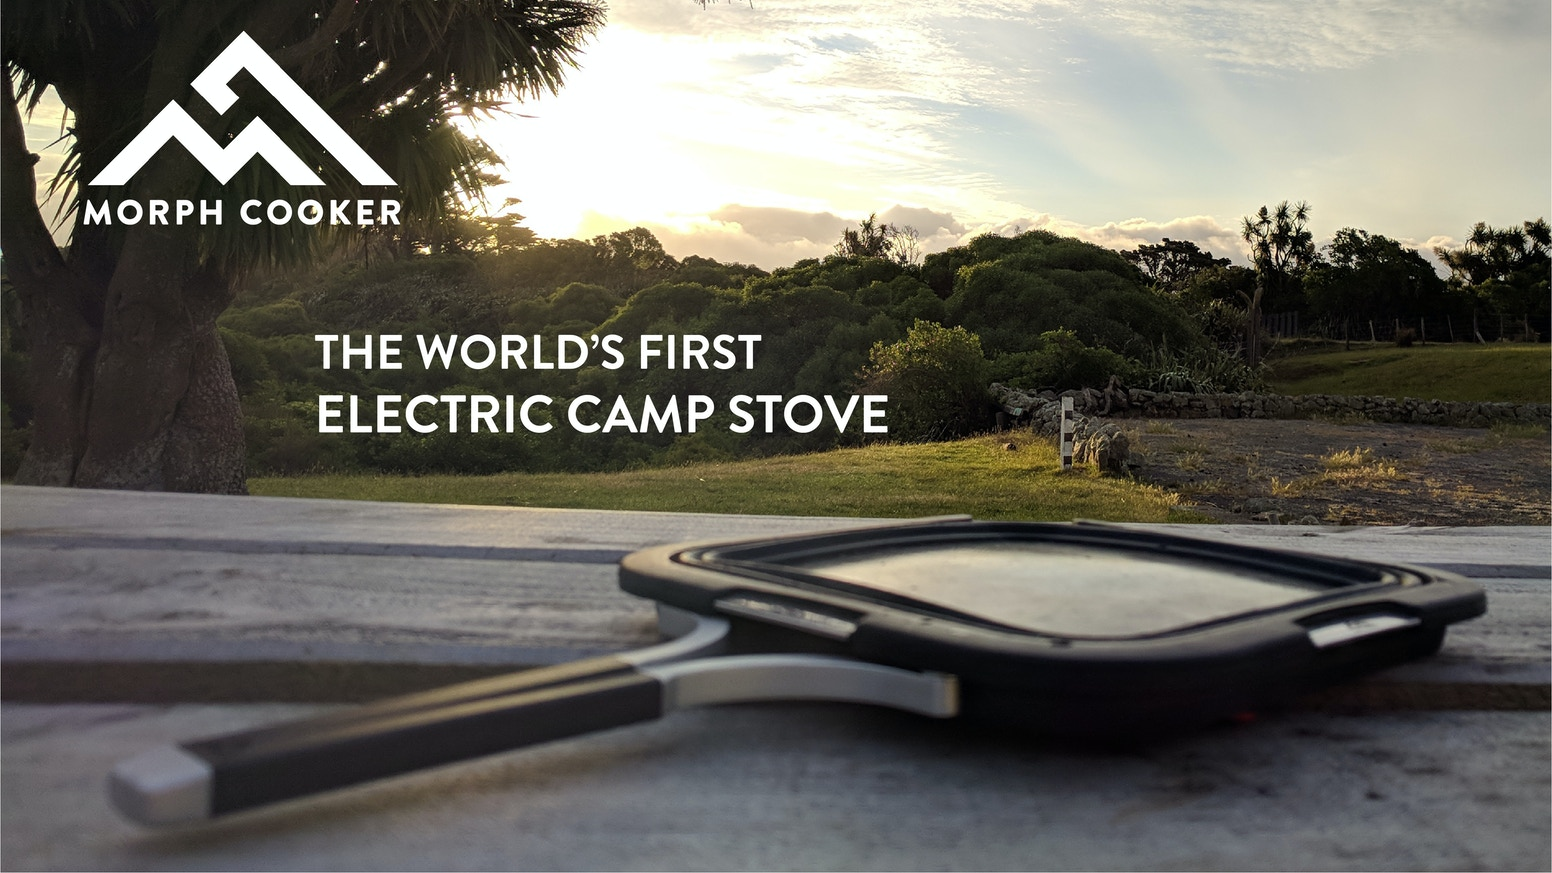 A versatile, rechargeable, electric camp stove that cooks almost any meal and provides a safer environment.